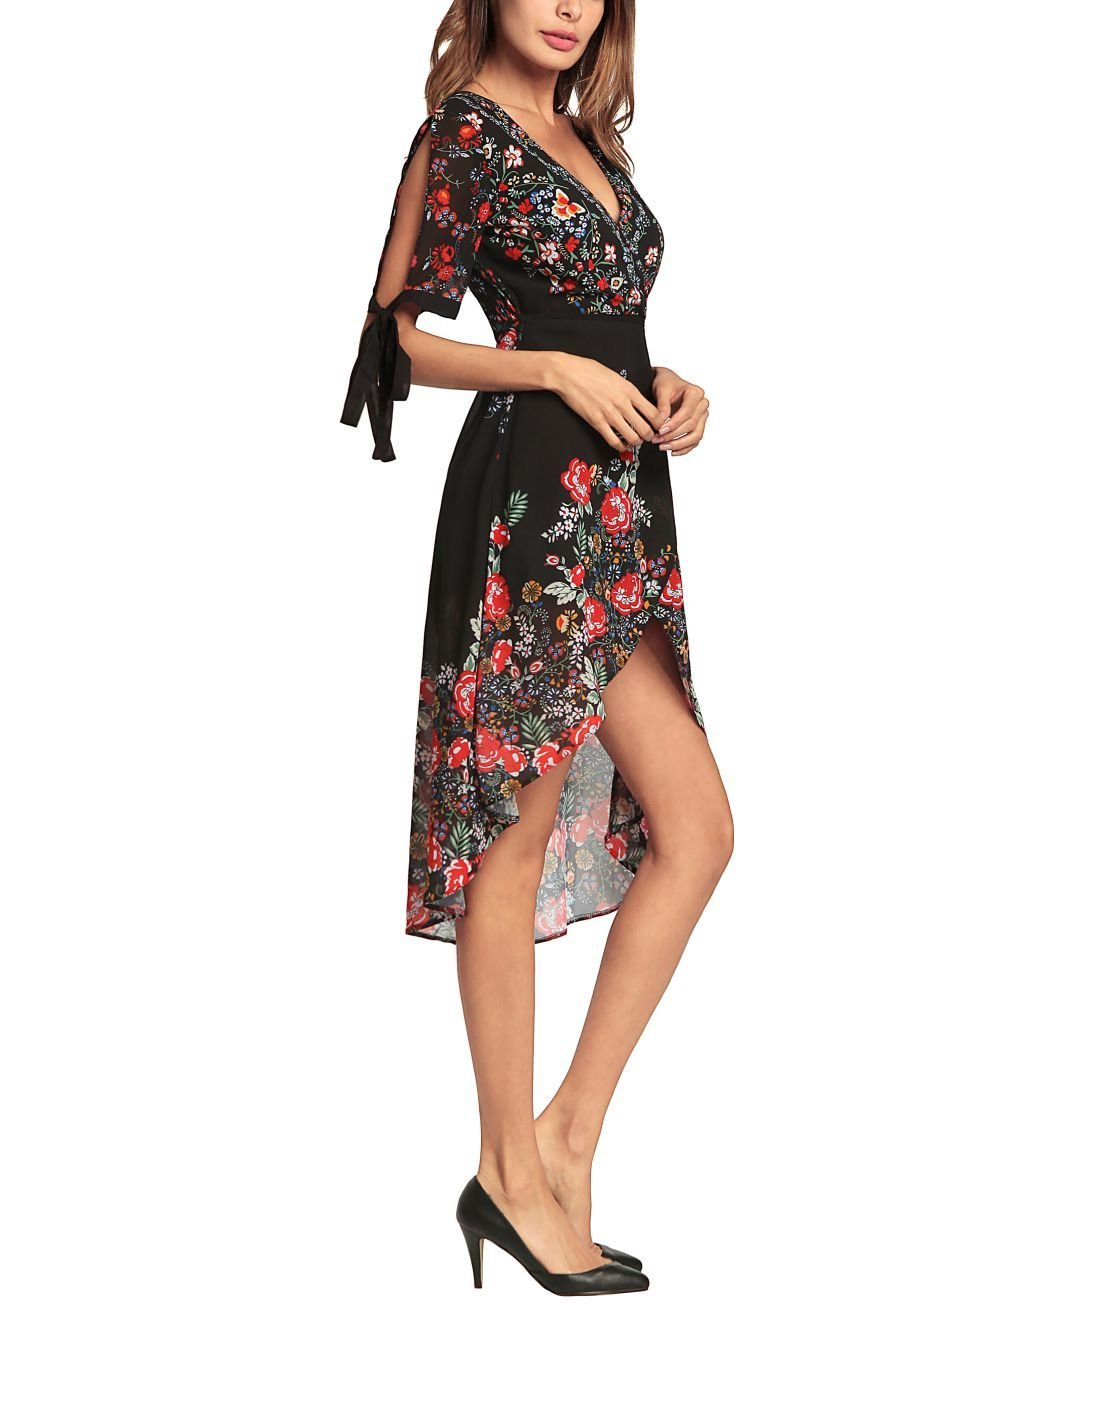 Boho Print Formal Dress with Wrap Styling